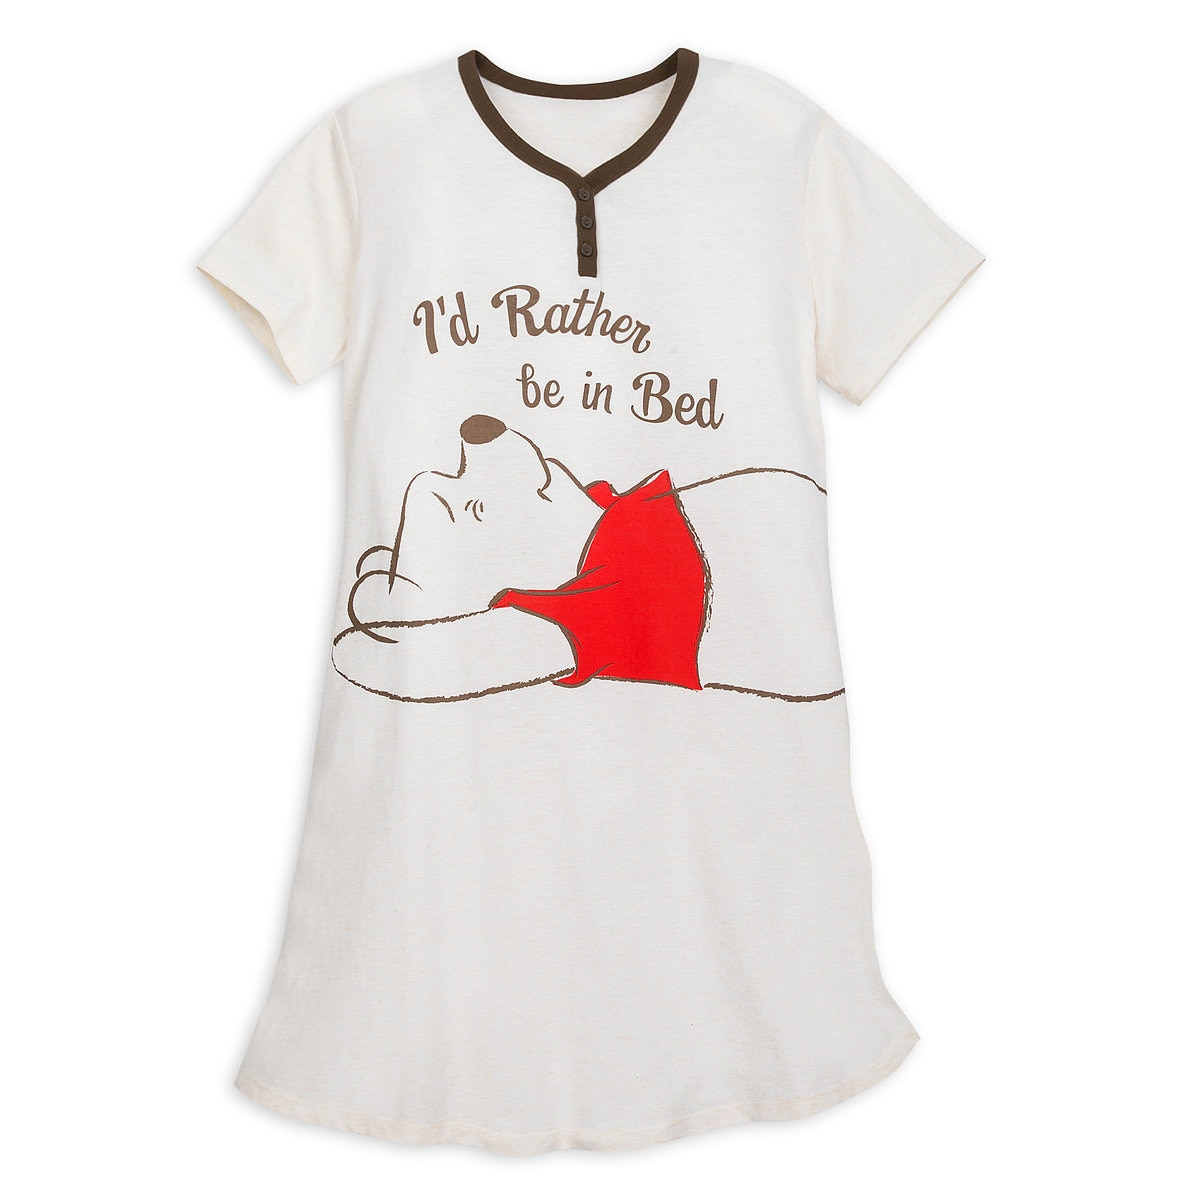 dfea15b30010 Product Image of Winnie the Pooh Nightshirt for Women   1